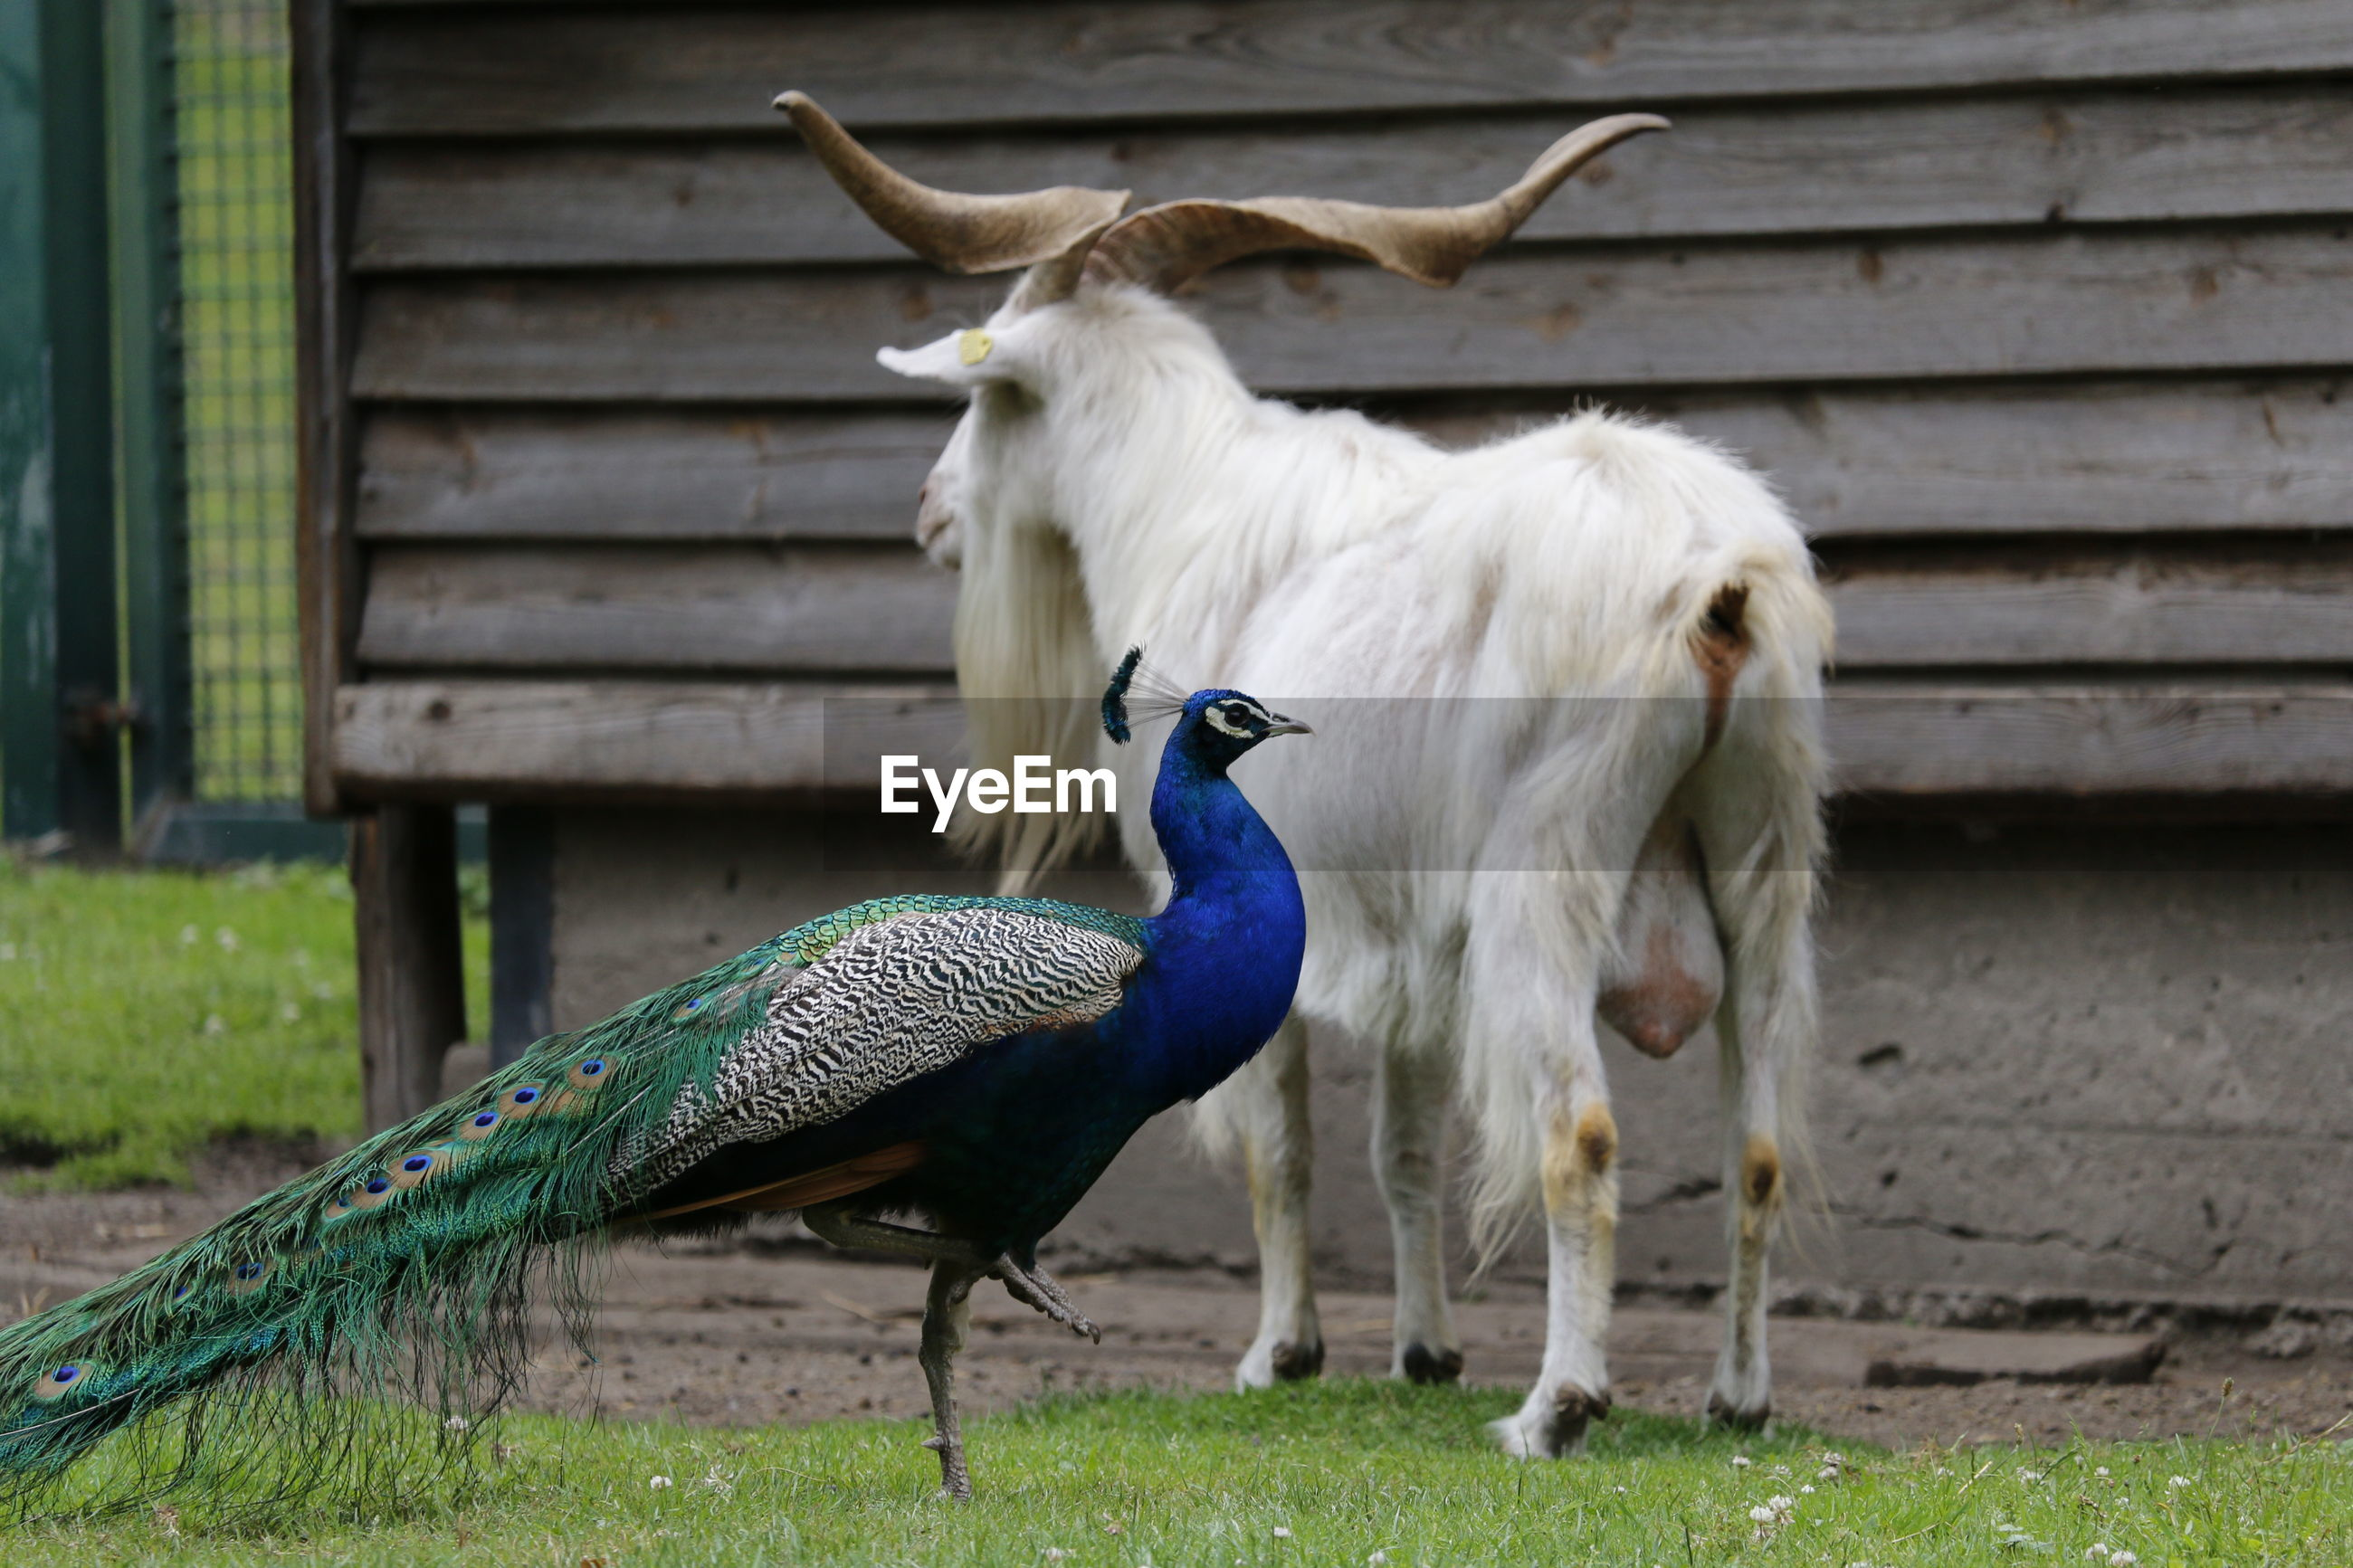 Peacock with goat on field against wall